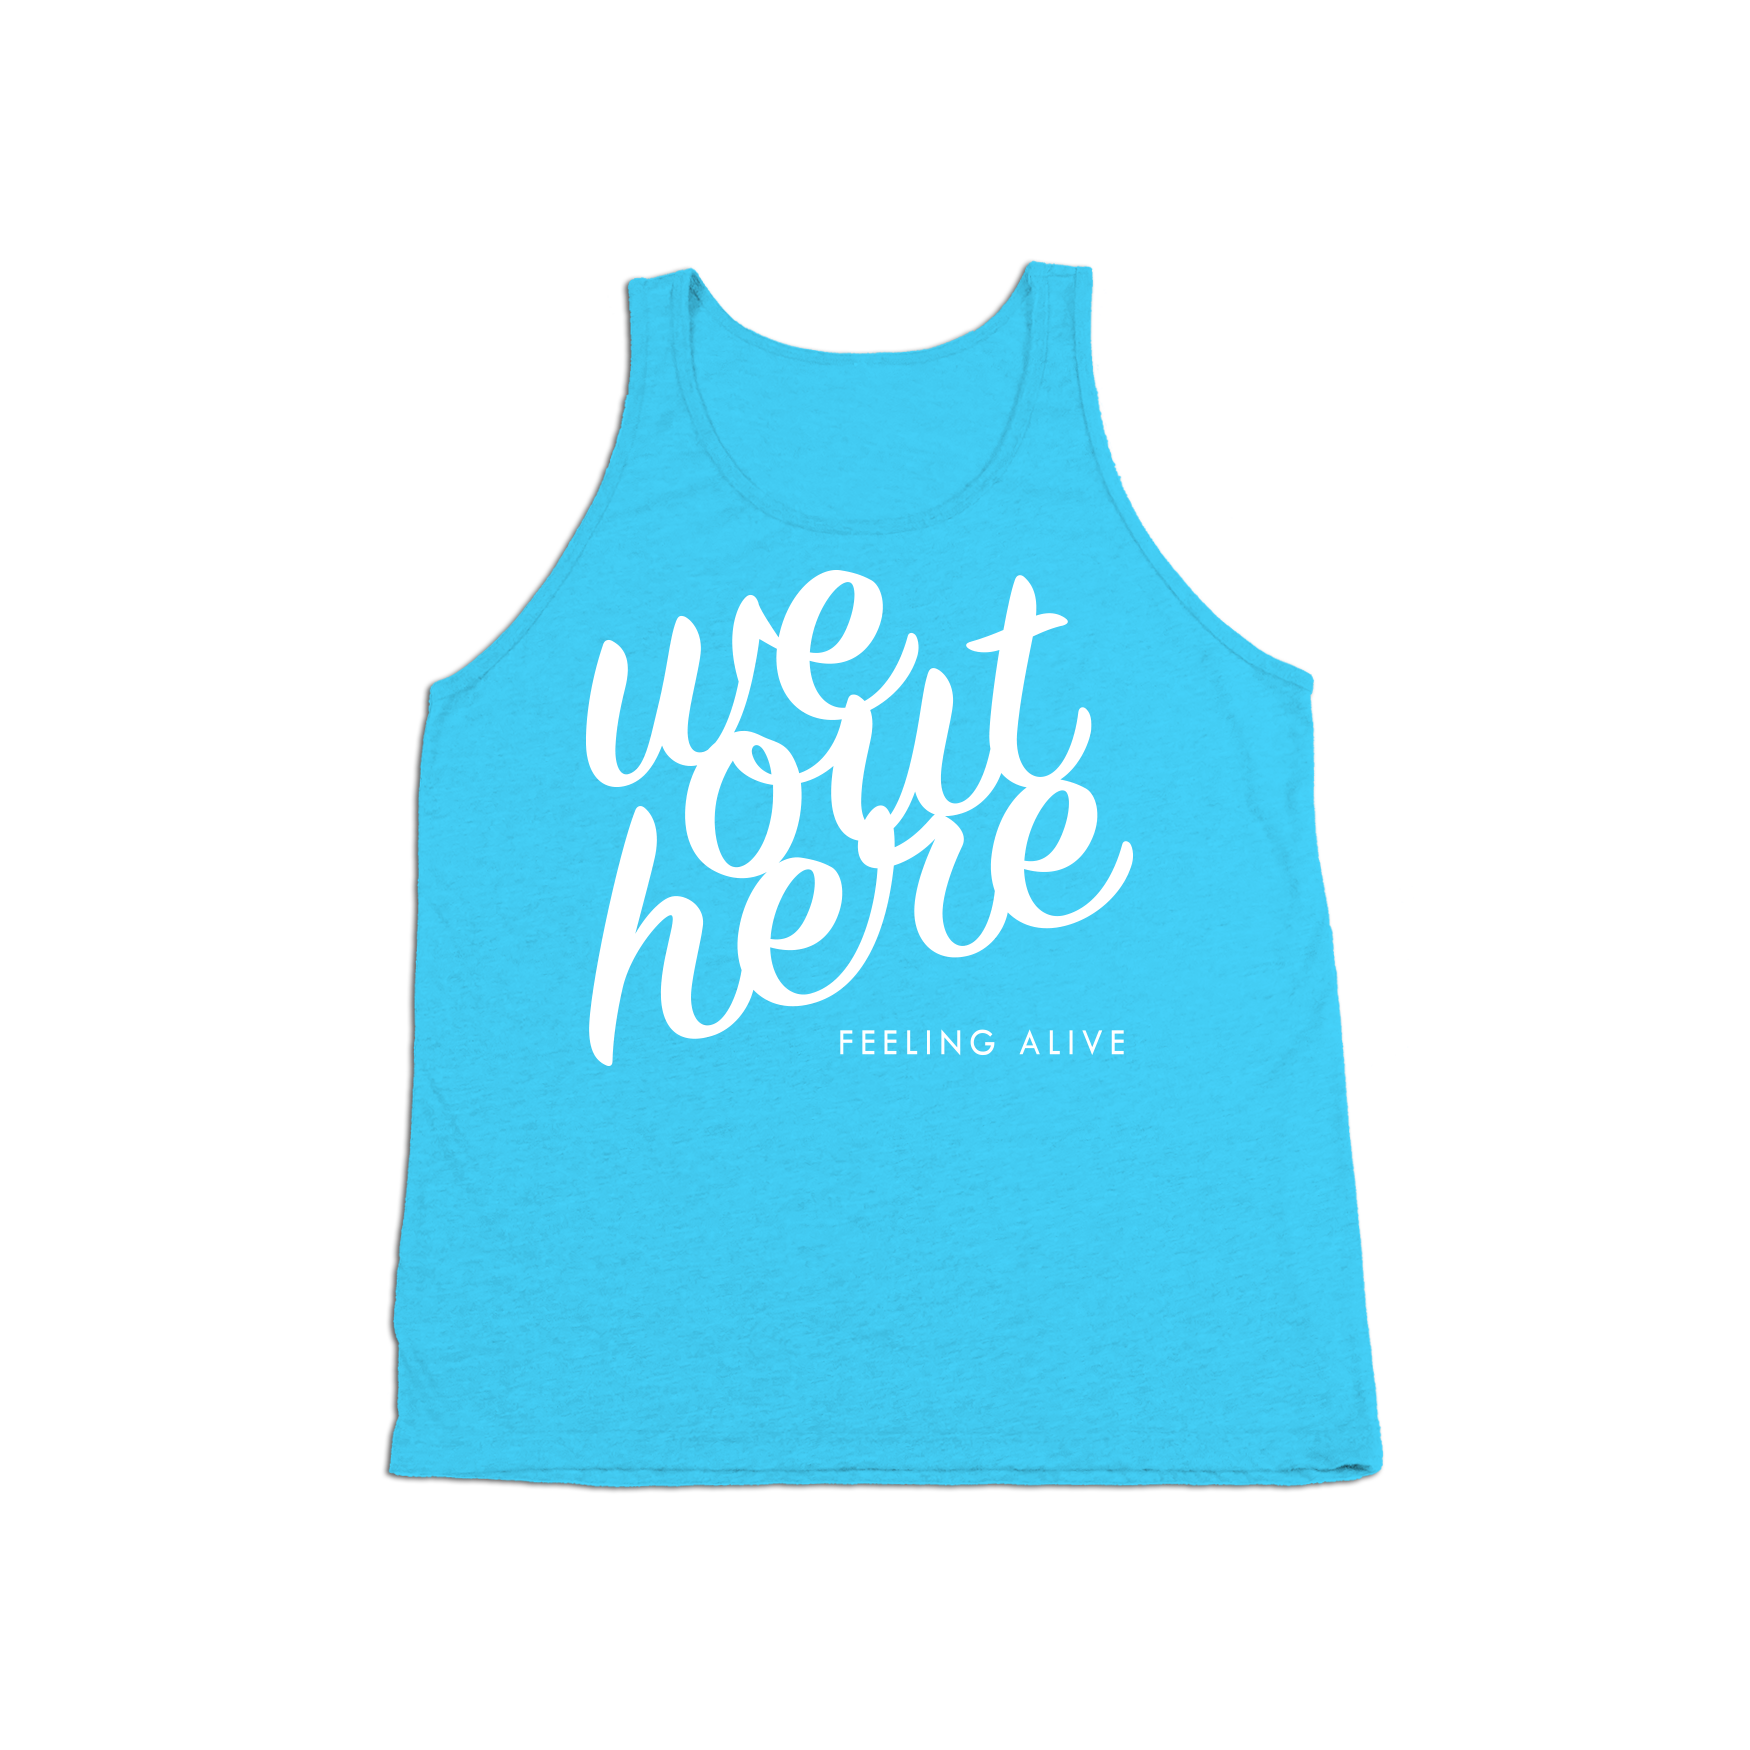 #WEOUTHERE KIDS Tank Top - White - Hat Mount for GoPro